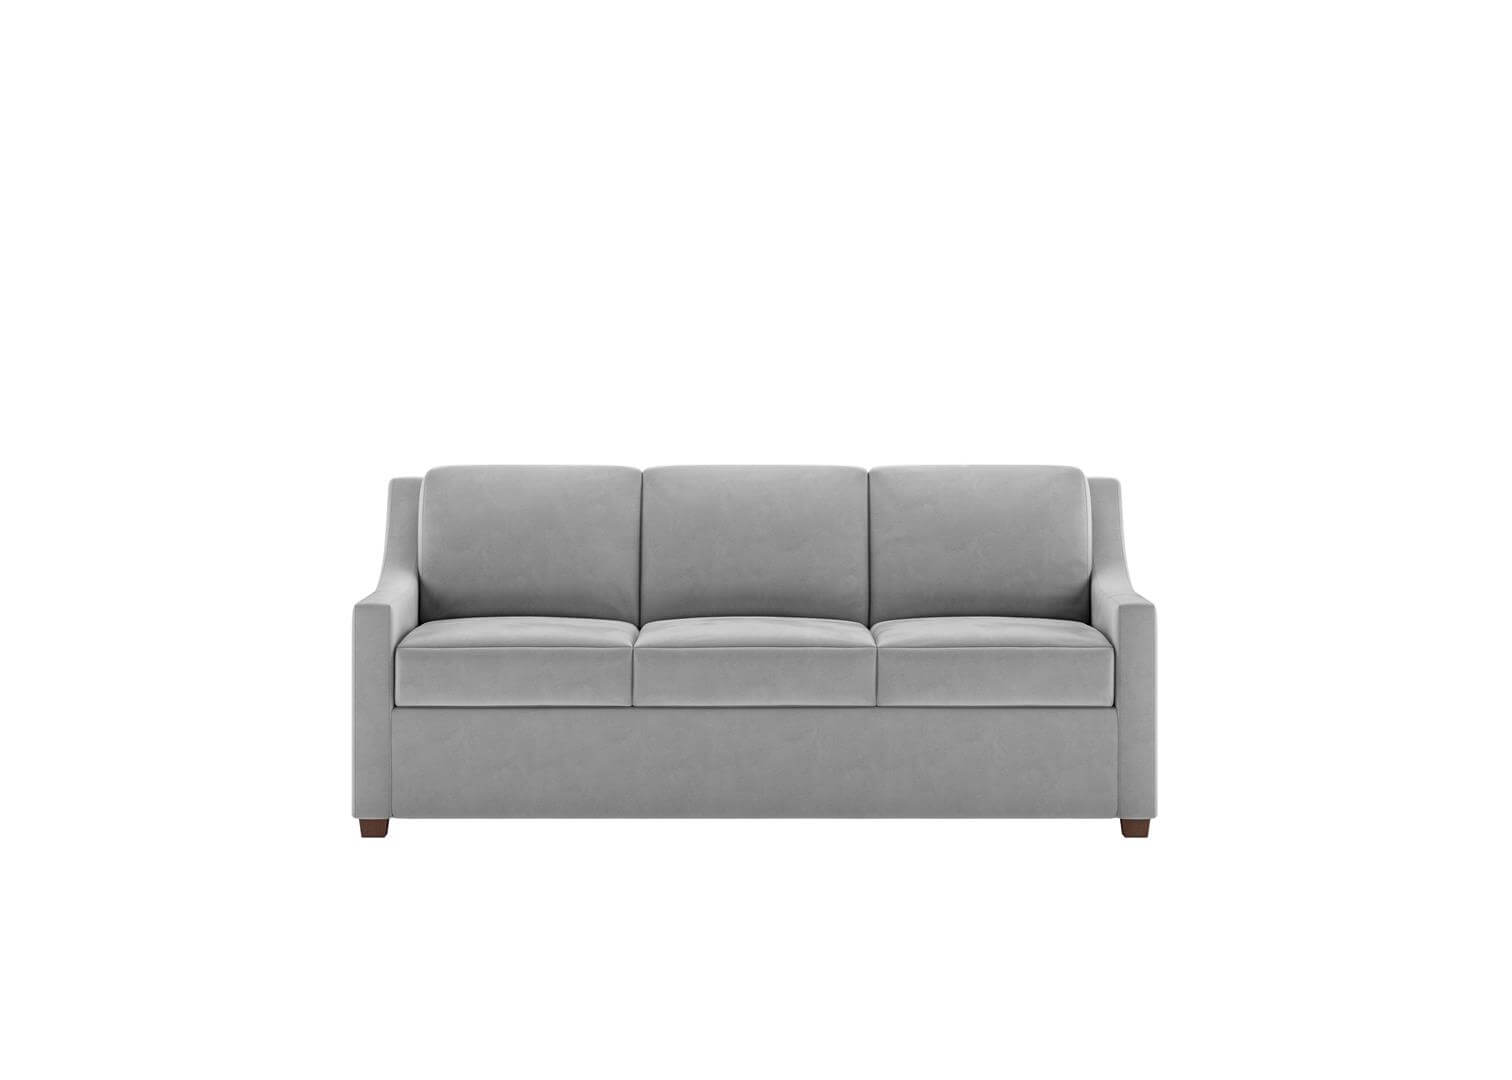 sofas by design des moines brown leather and fabric sectional sofa source for the comfort sleeper american